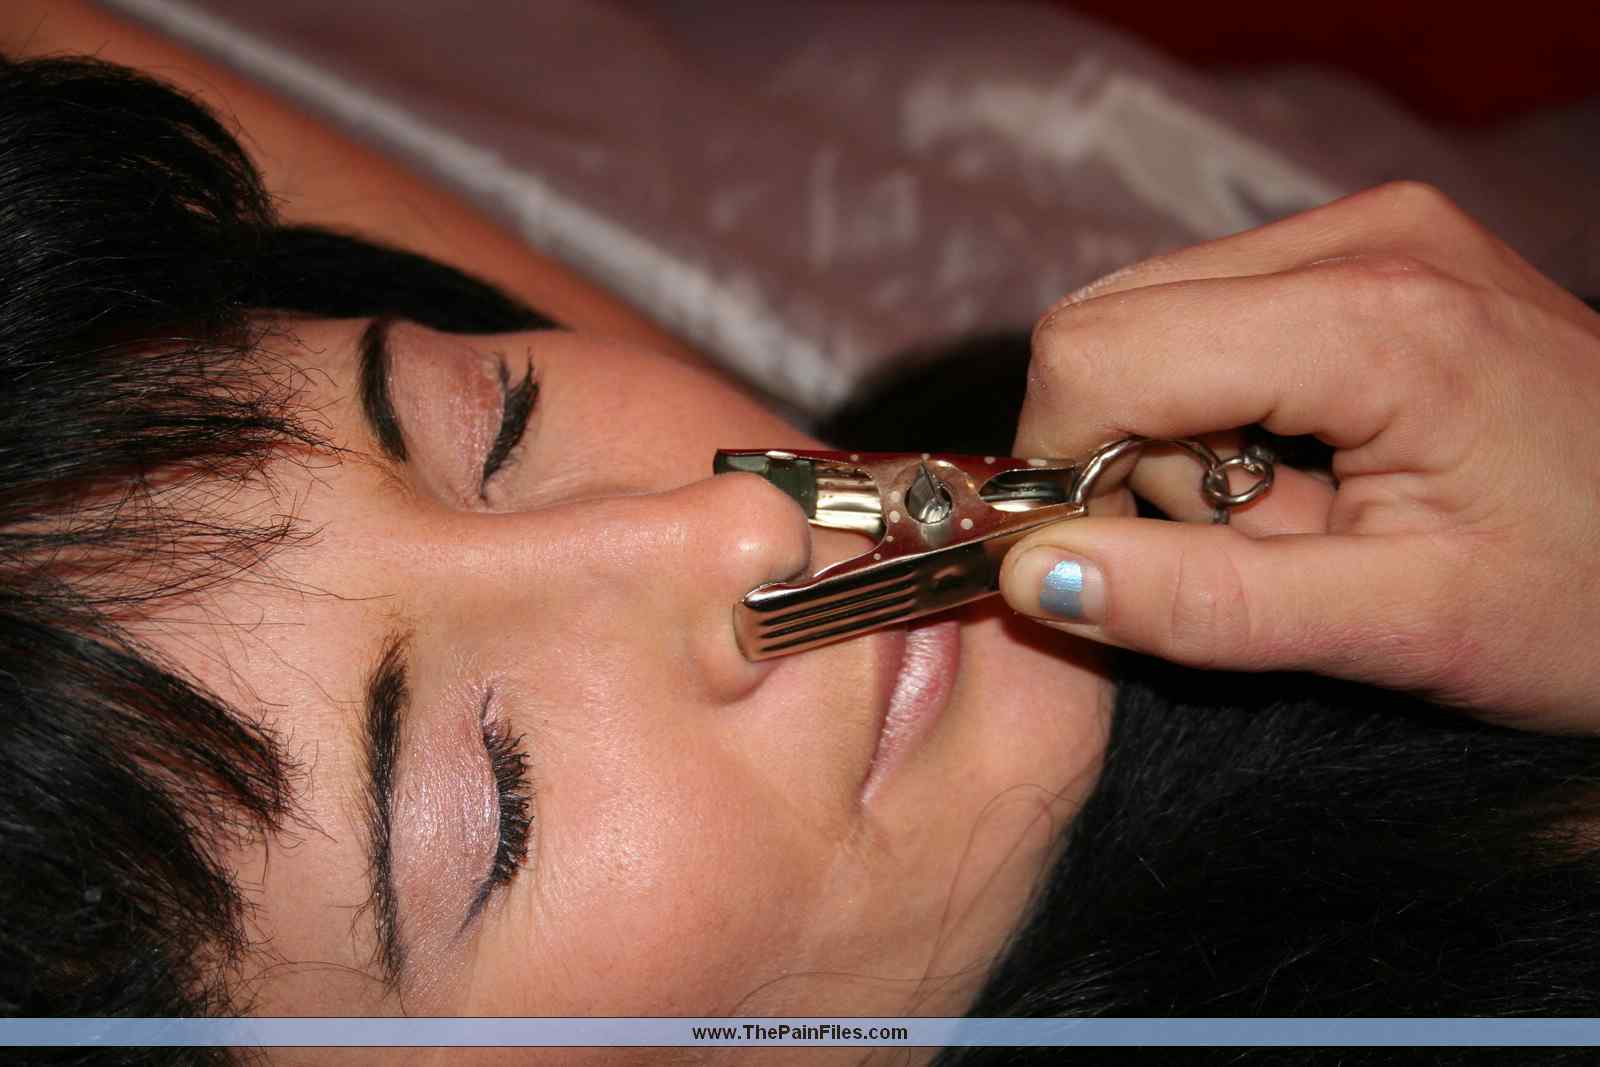 lesbian face humiliation and nose clamp torture